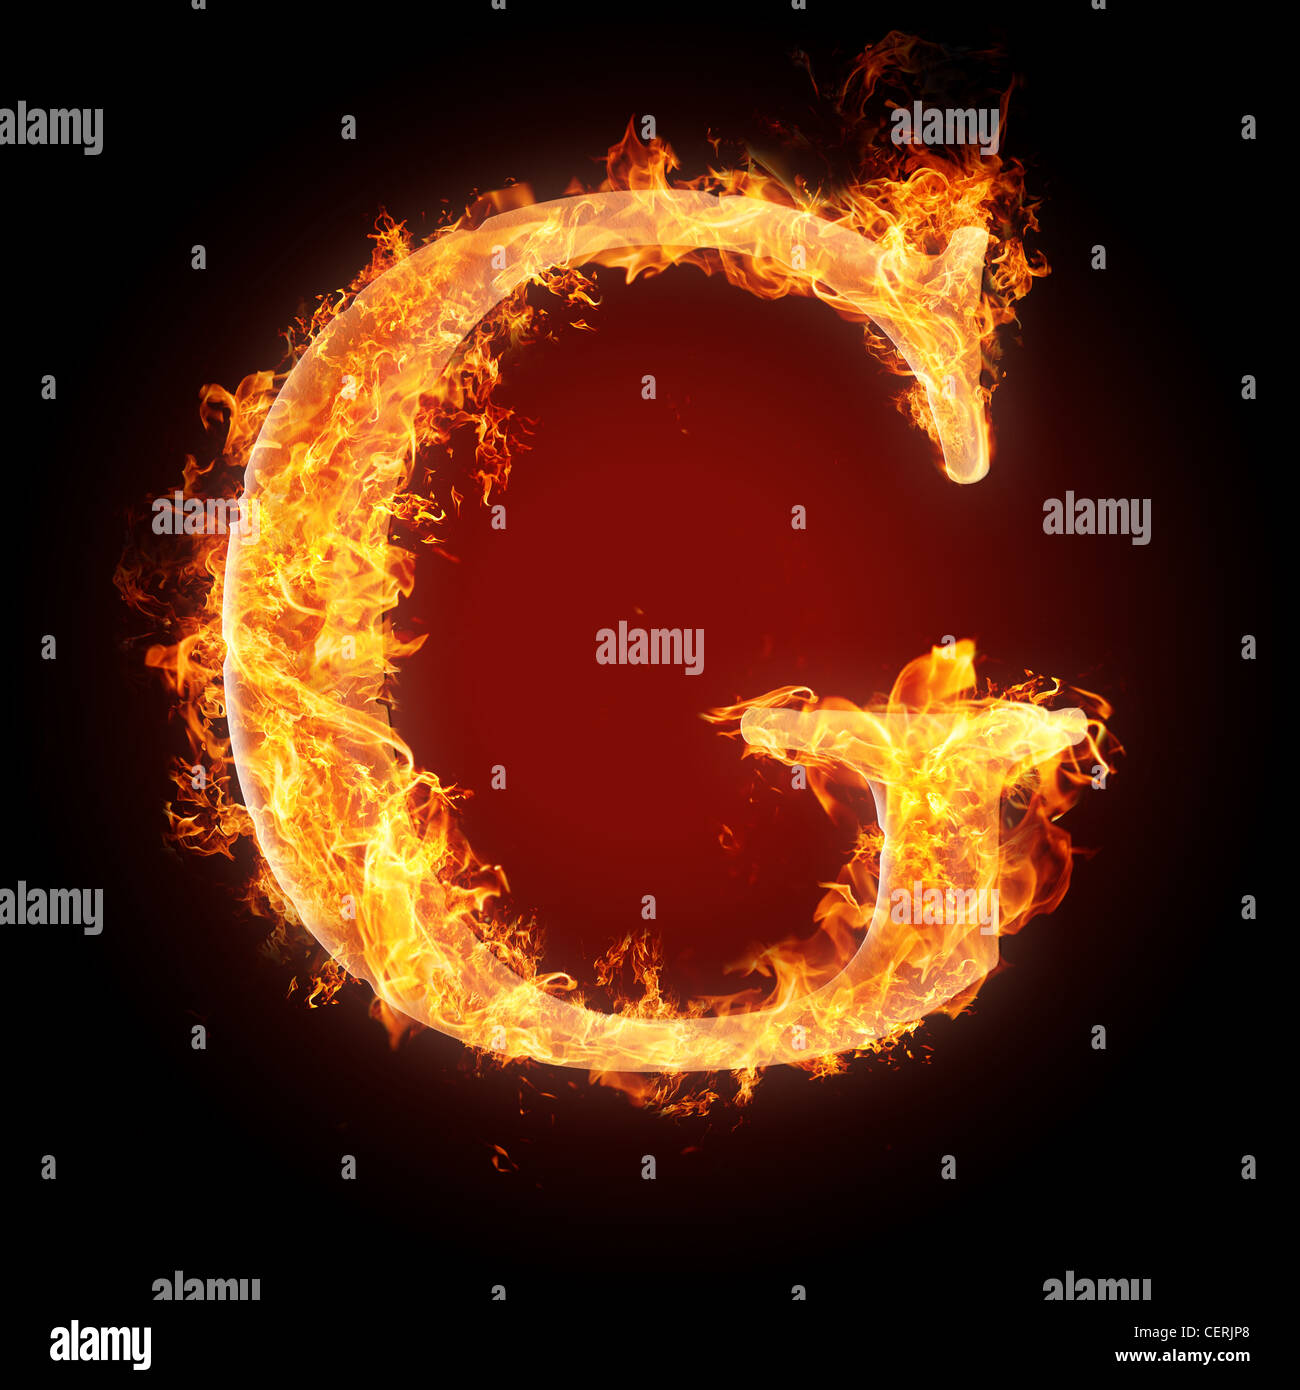 Fire Font Stock Photos & Fire Font Stock Images - Alamy